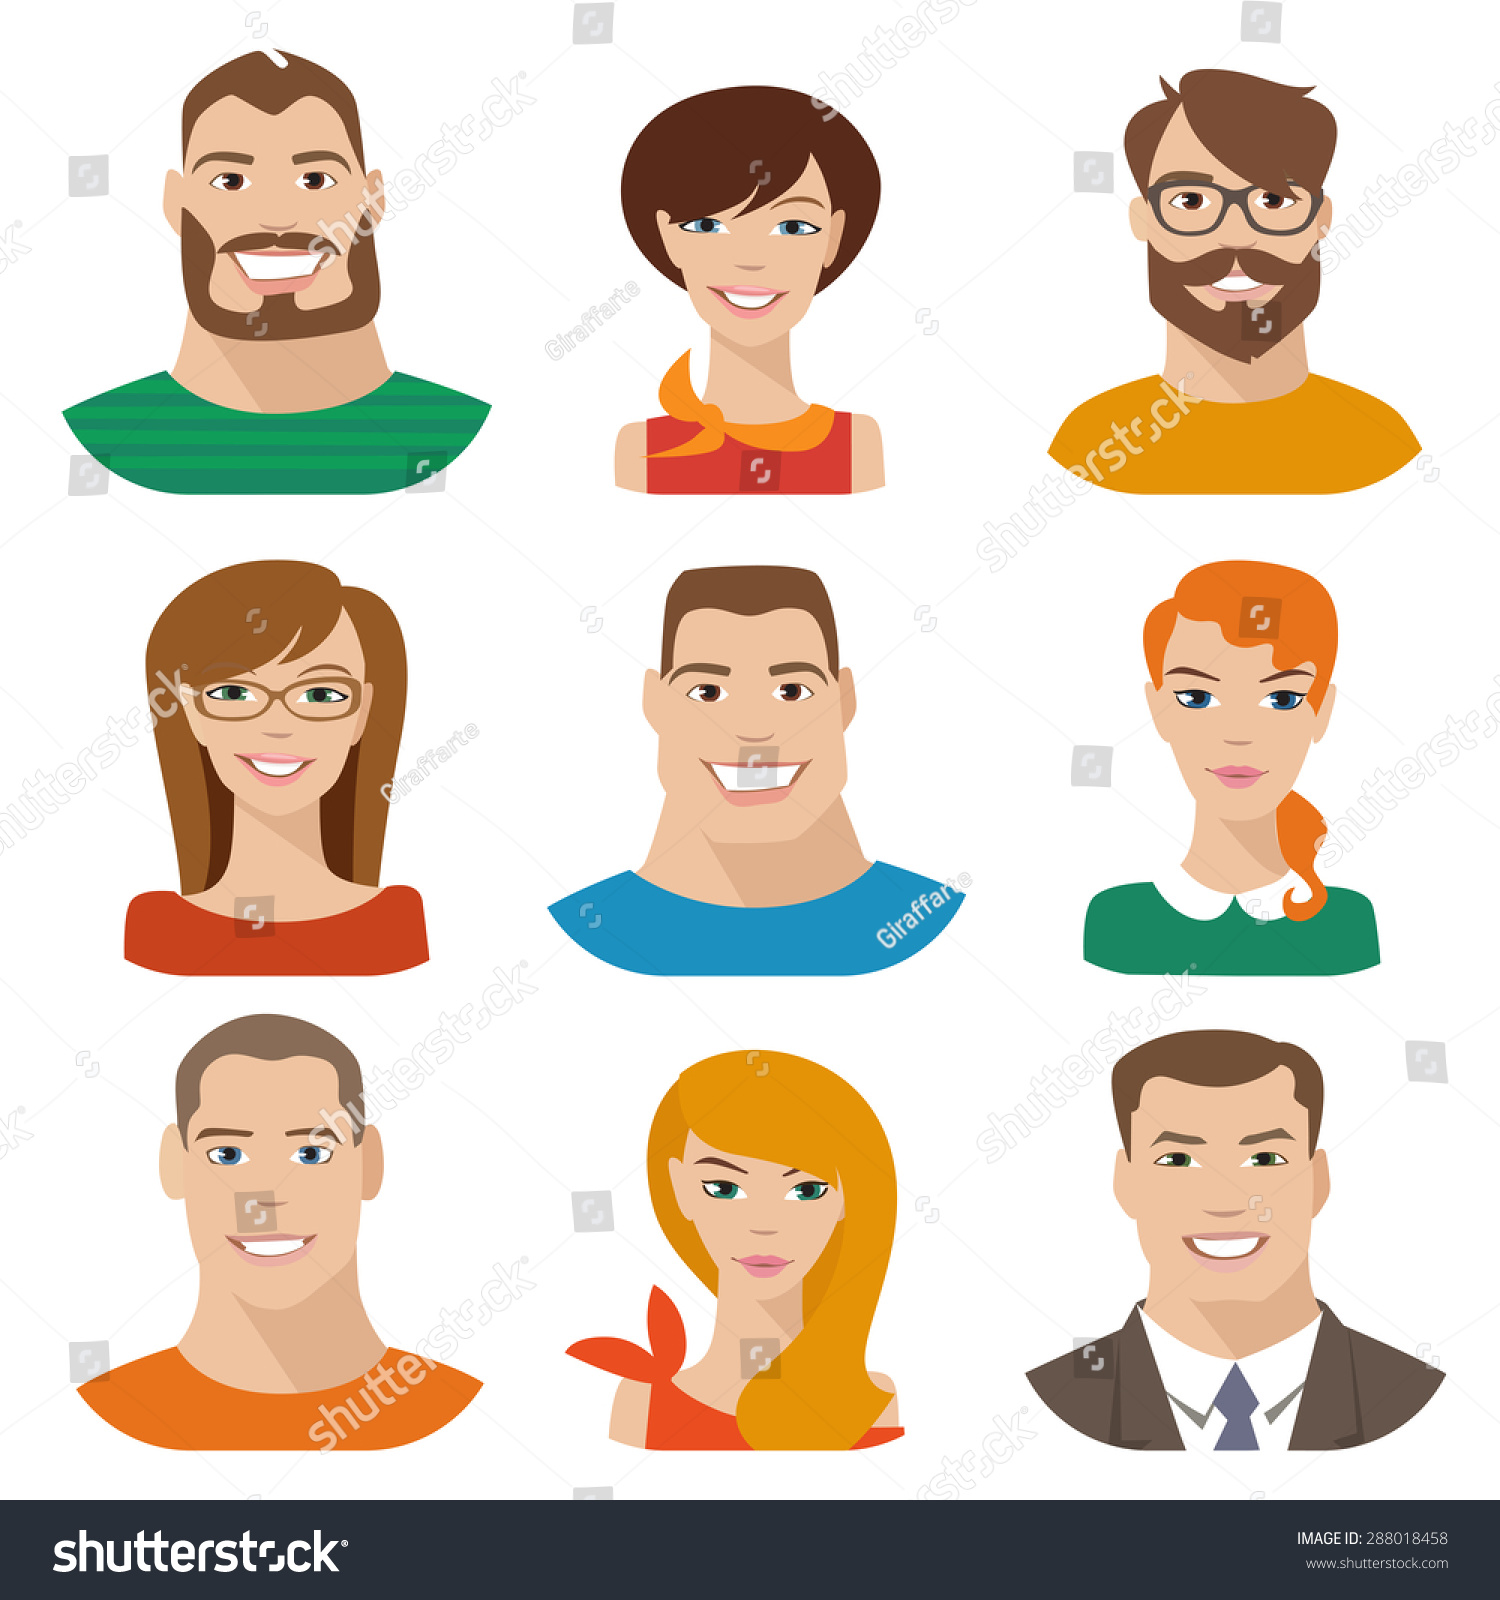 Flat Vector Characters Vector Avatars Eyes Stock Vector